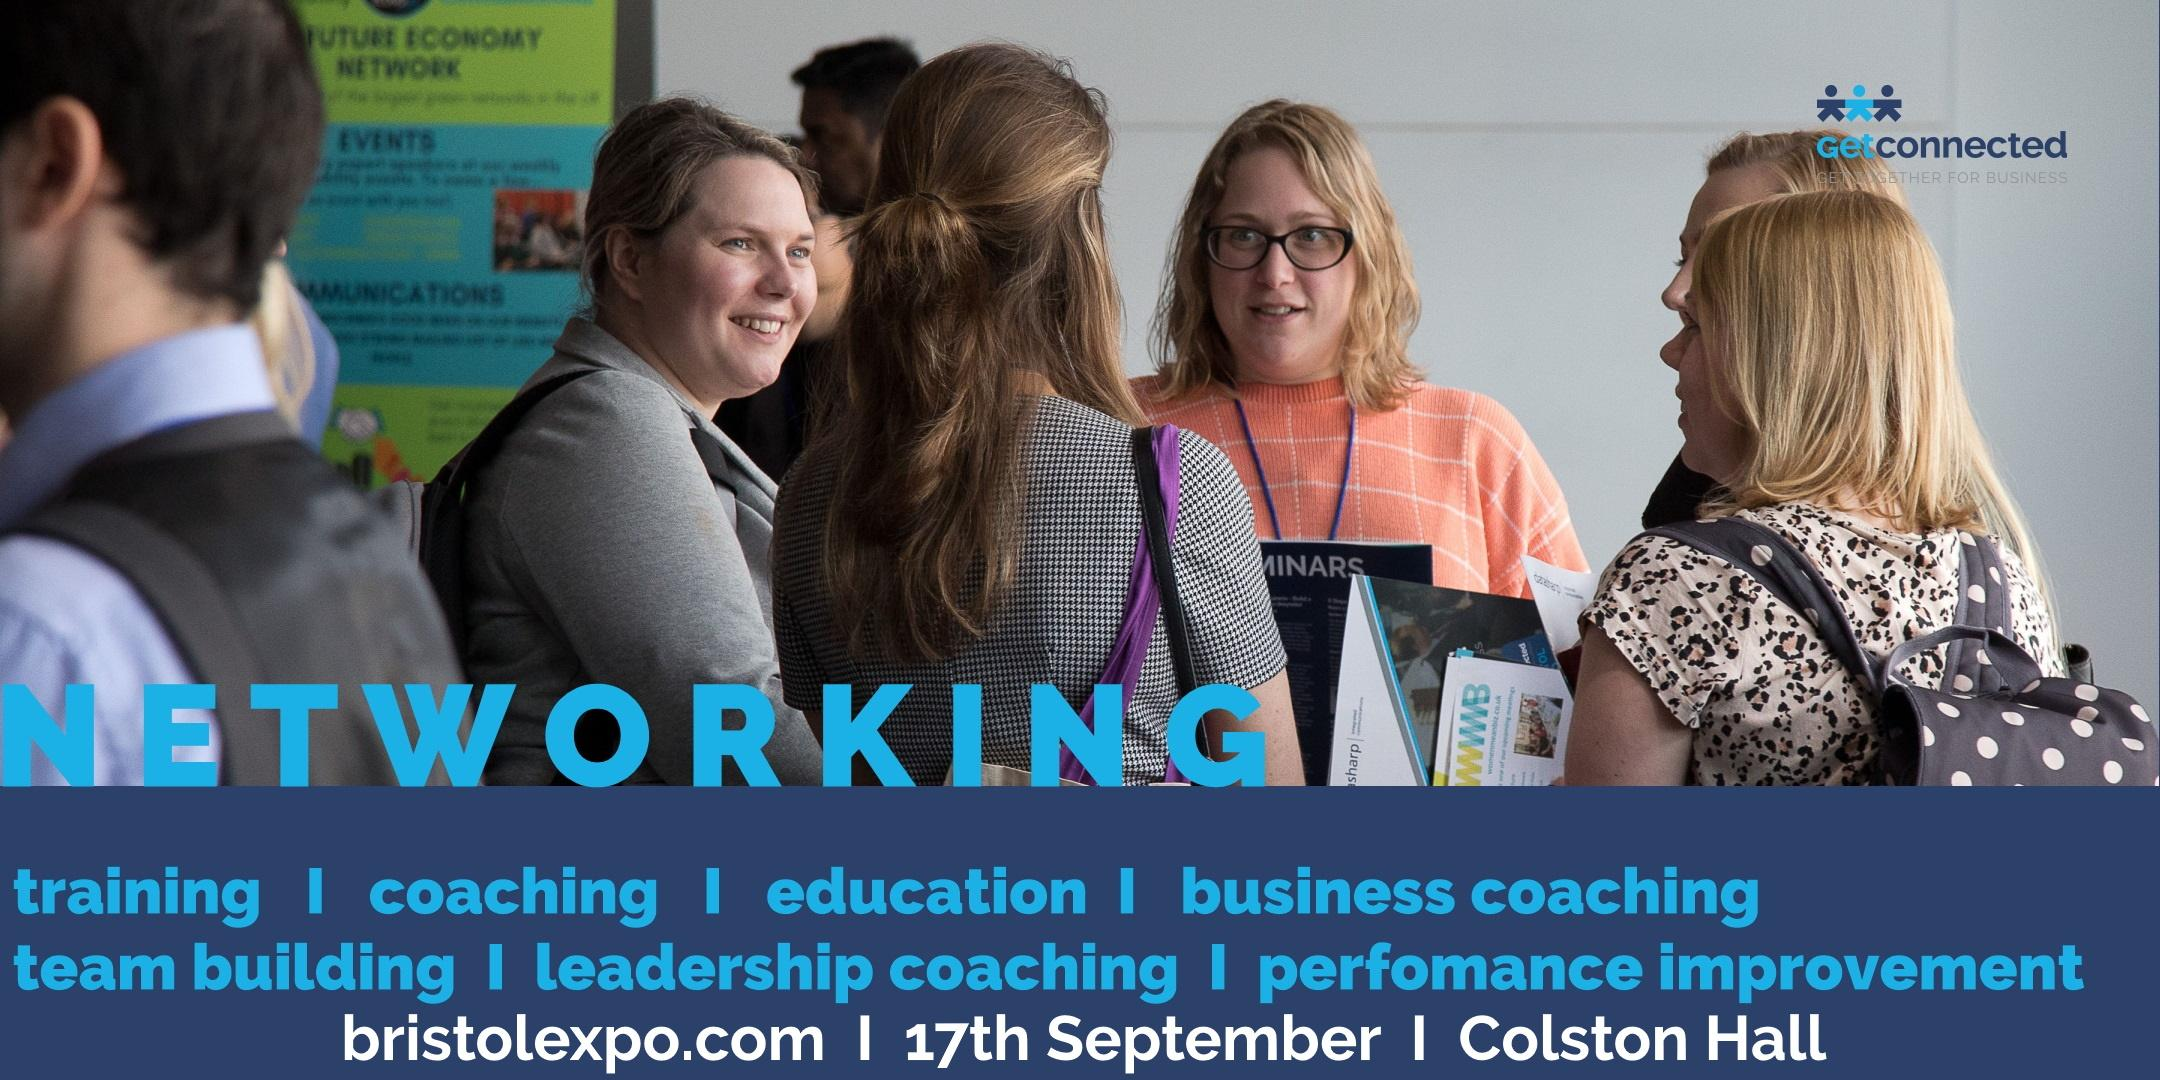 Networking for Education, Training, Coaching, Business Consultants